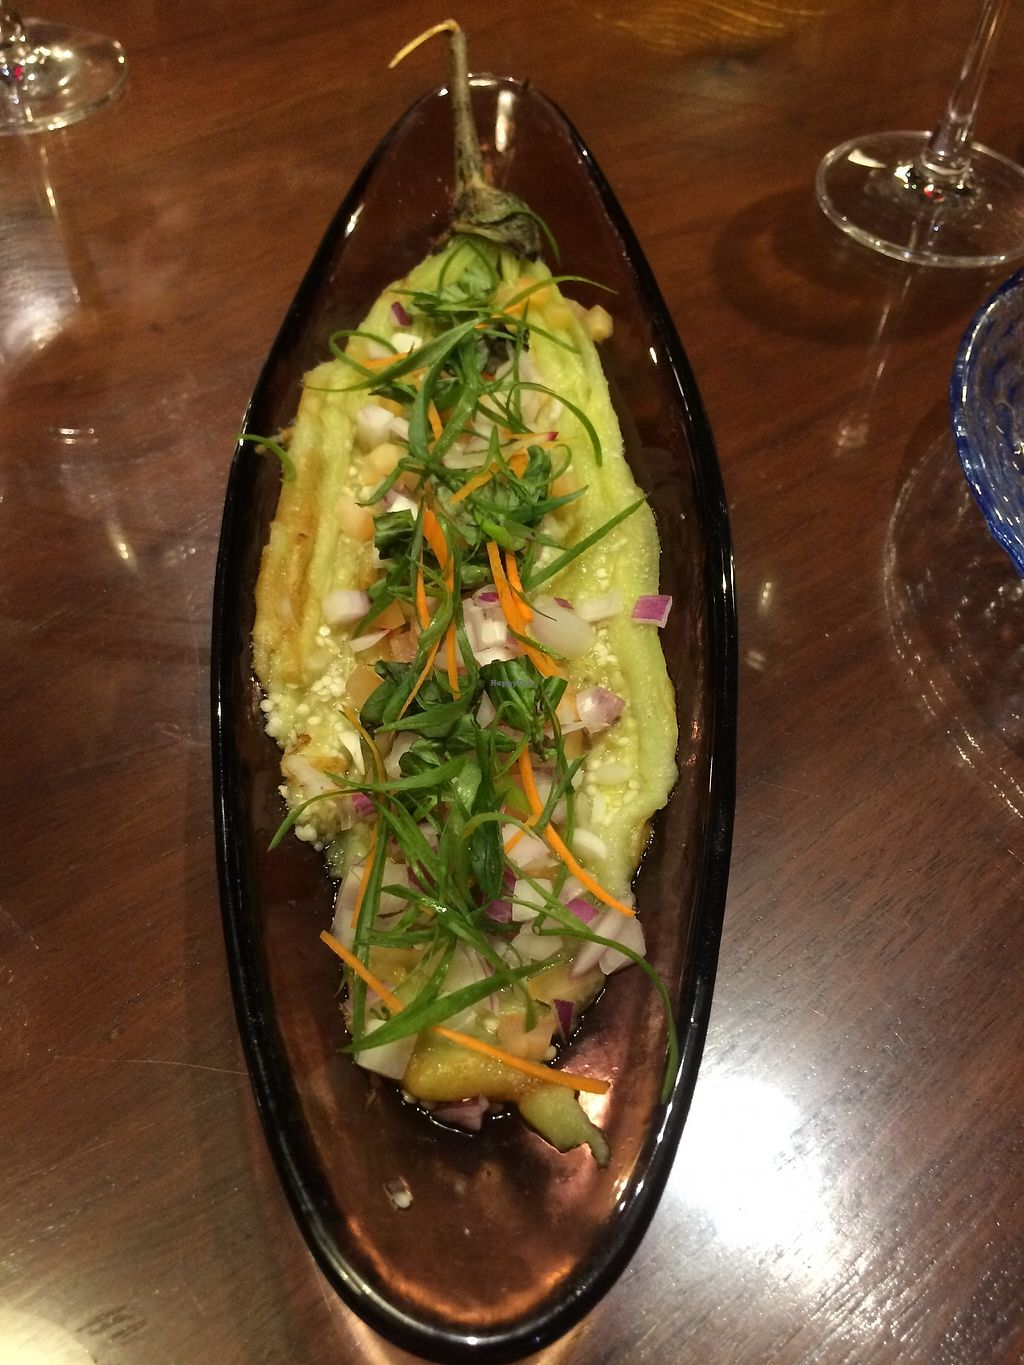 """Photo of Subo  by <a href=""""/members/profile/Bethevegan"""">Bethevegan</a> <br/>Pickled eggplant <br/> March 20, 2018  - <a href='/contact/abuse/image/113836/373351'>Report</a>"""